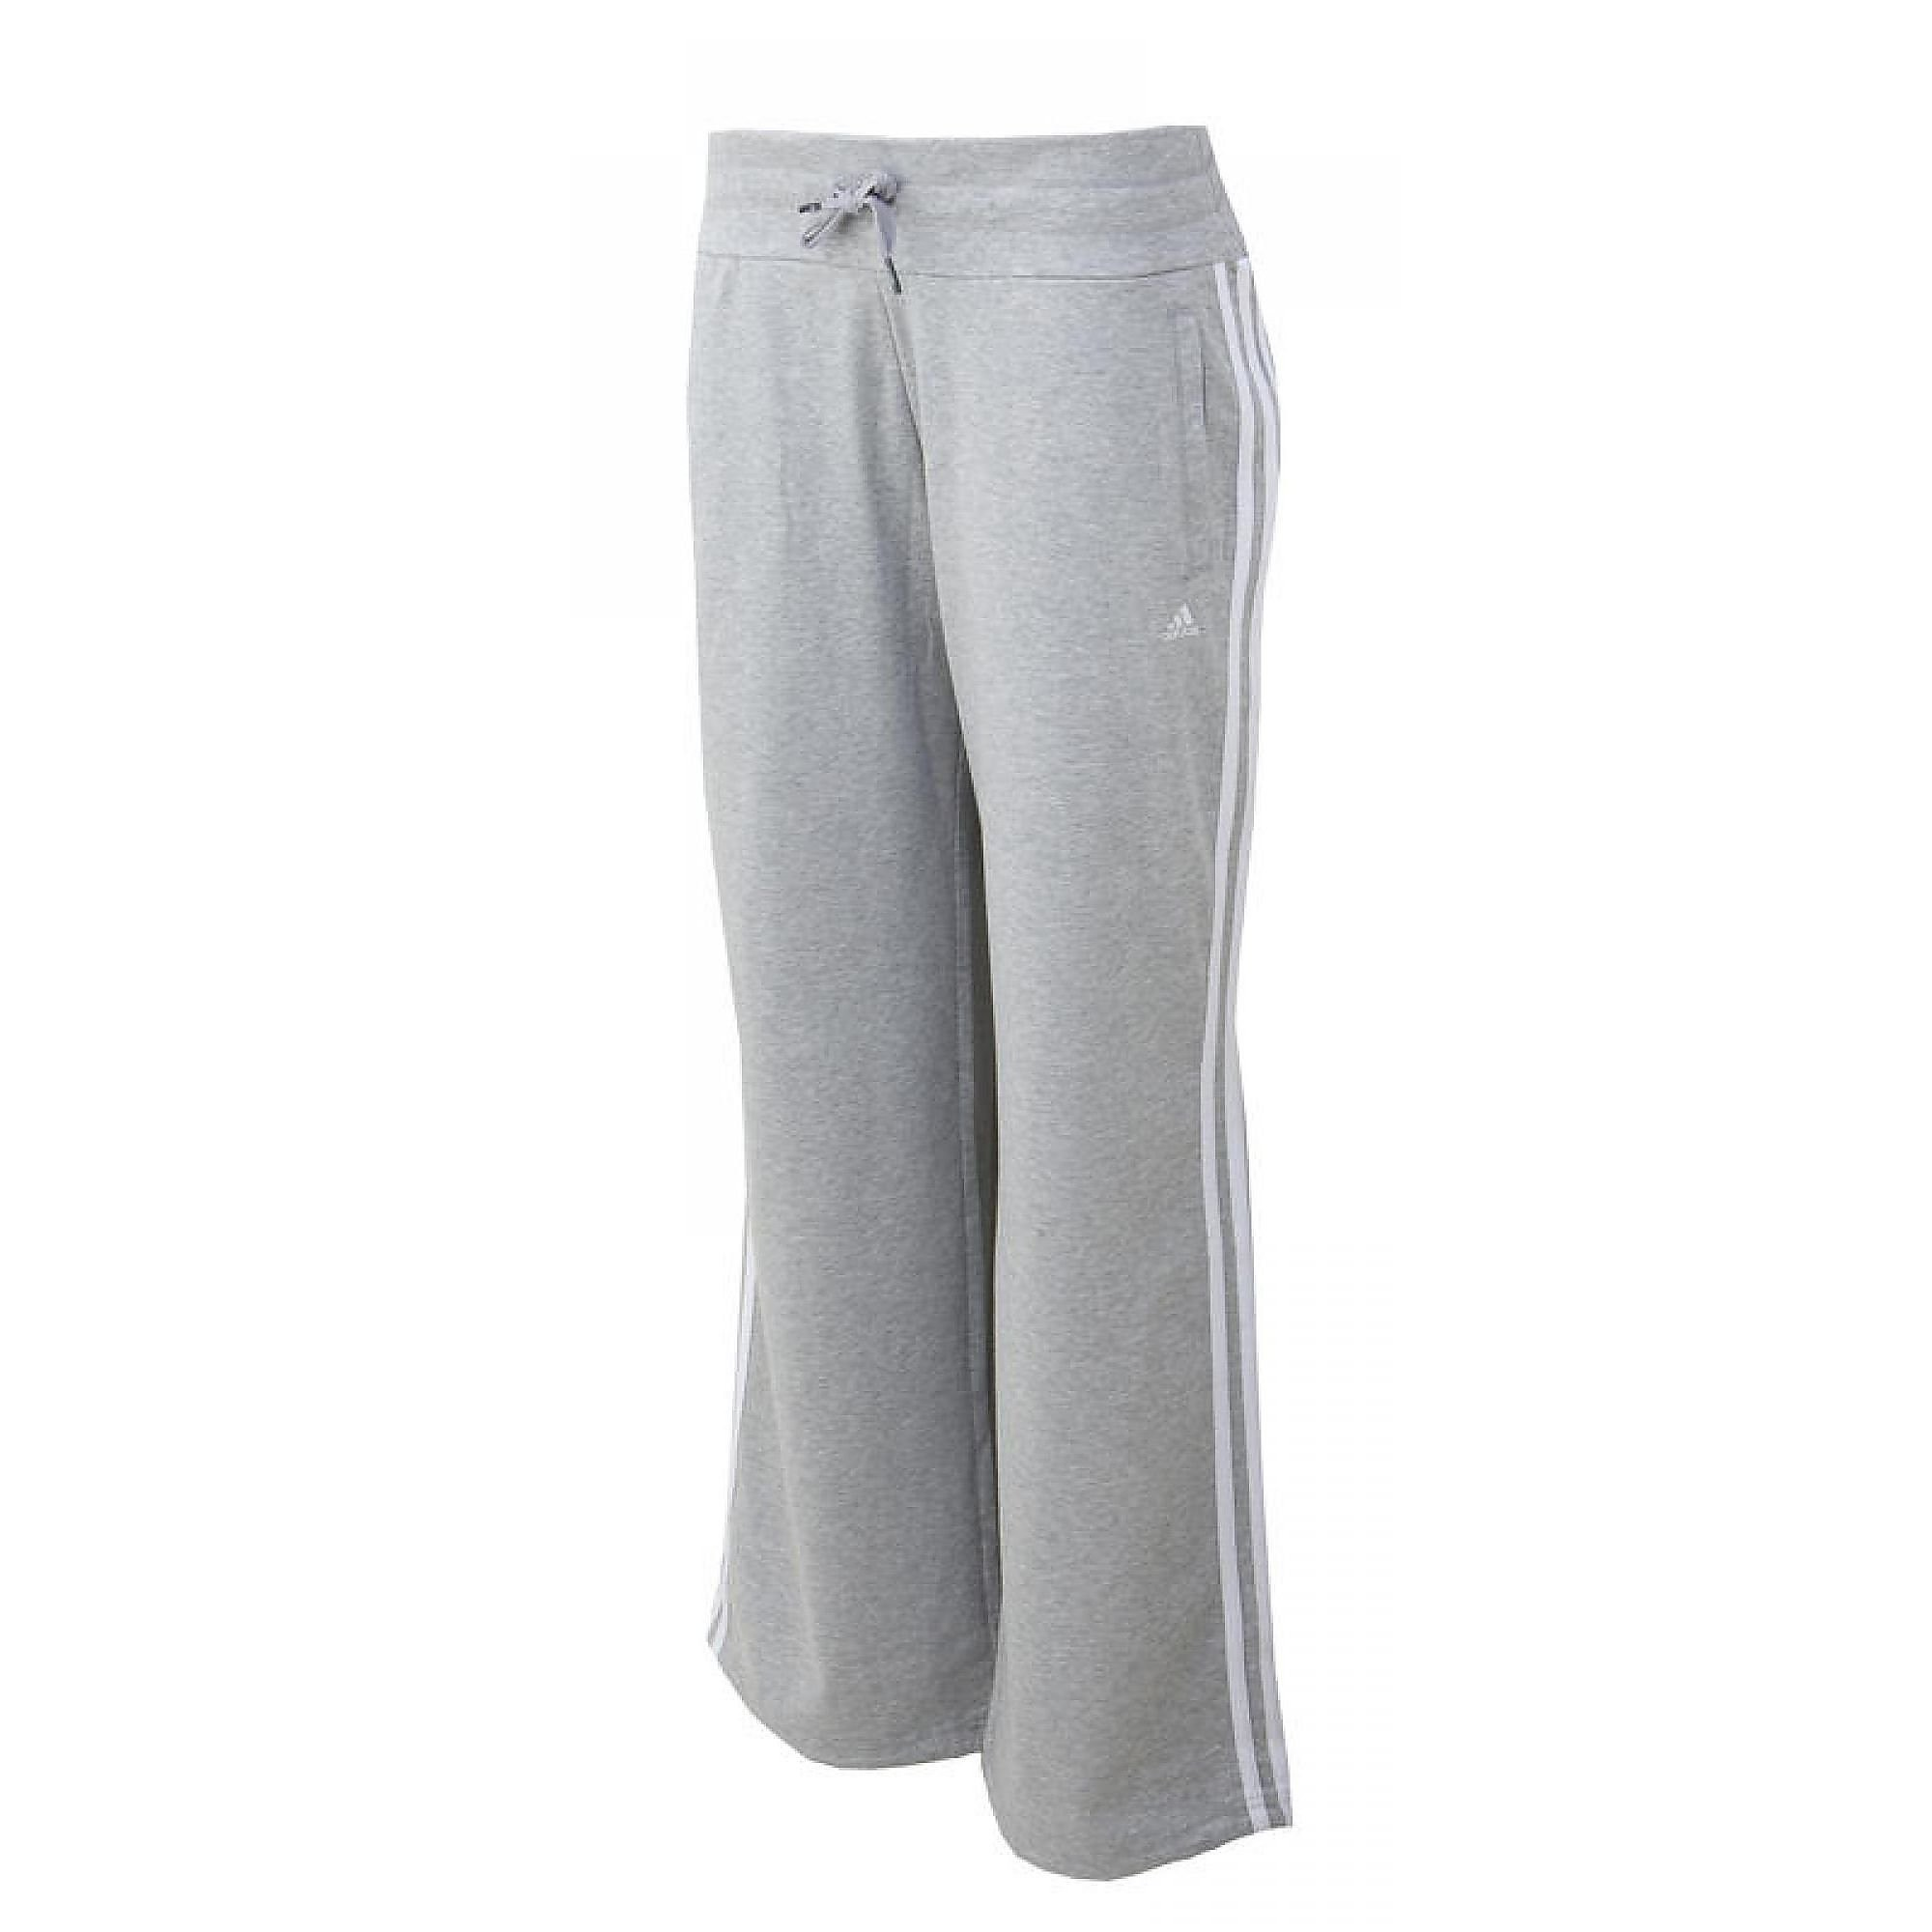 adidas essentials 3-stripes knit pant